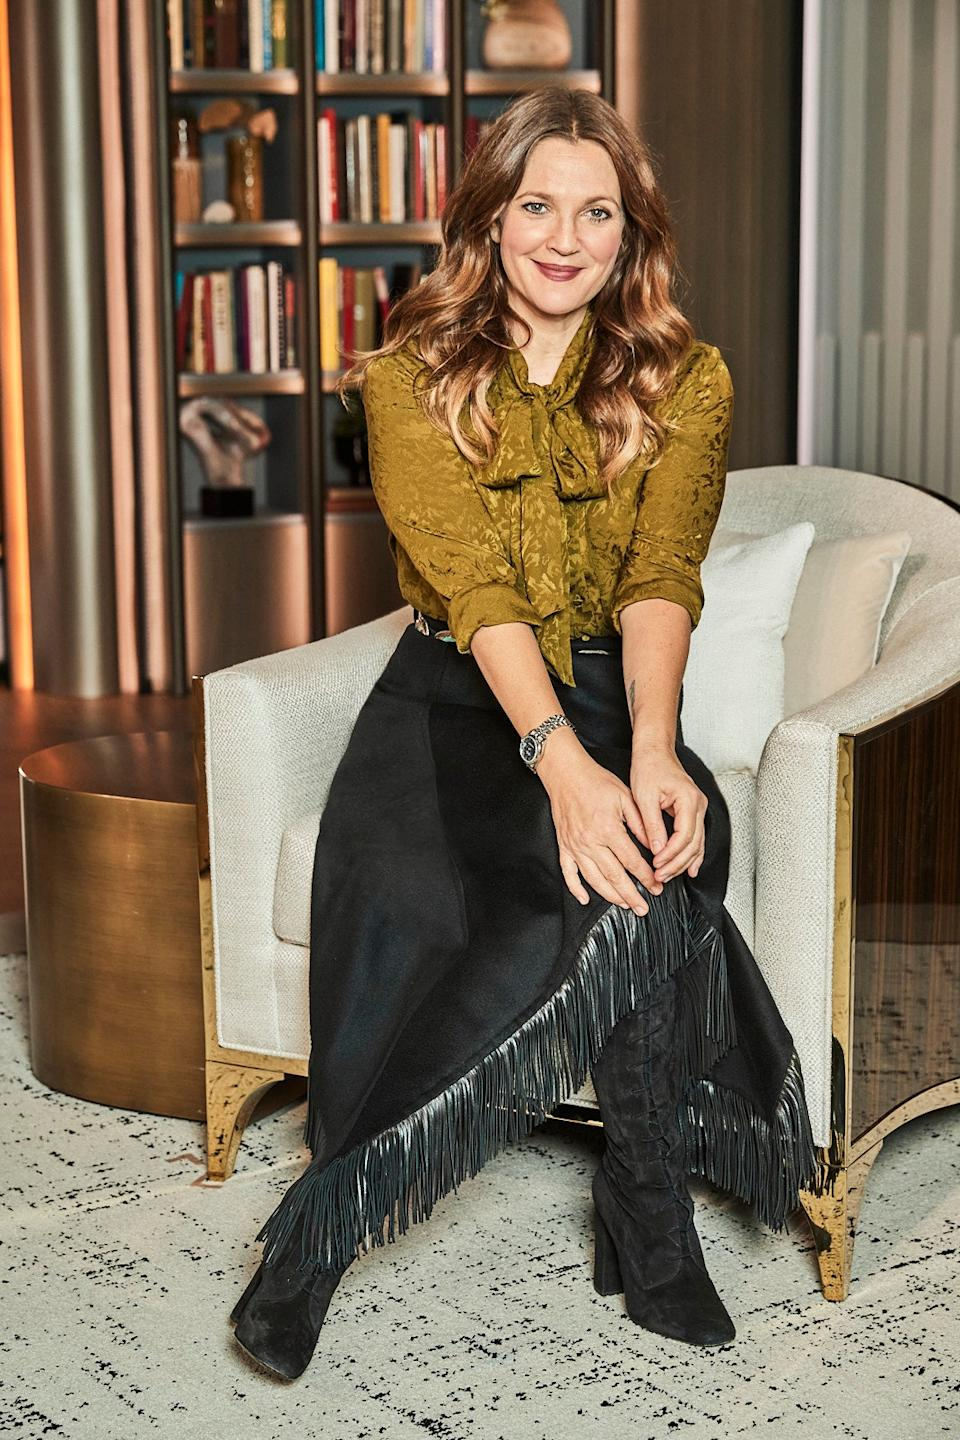 The Drew Barrymore Show : Everything We Know About the Actor's New Talk Show